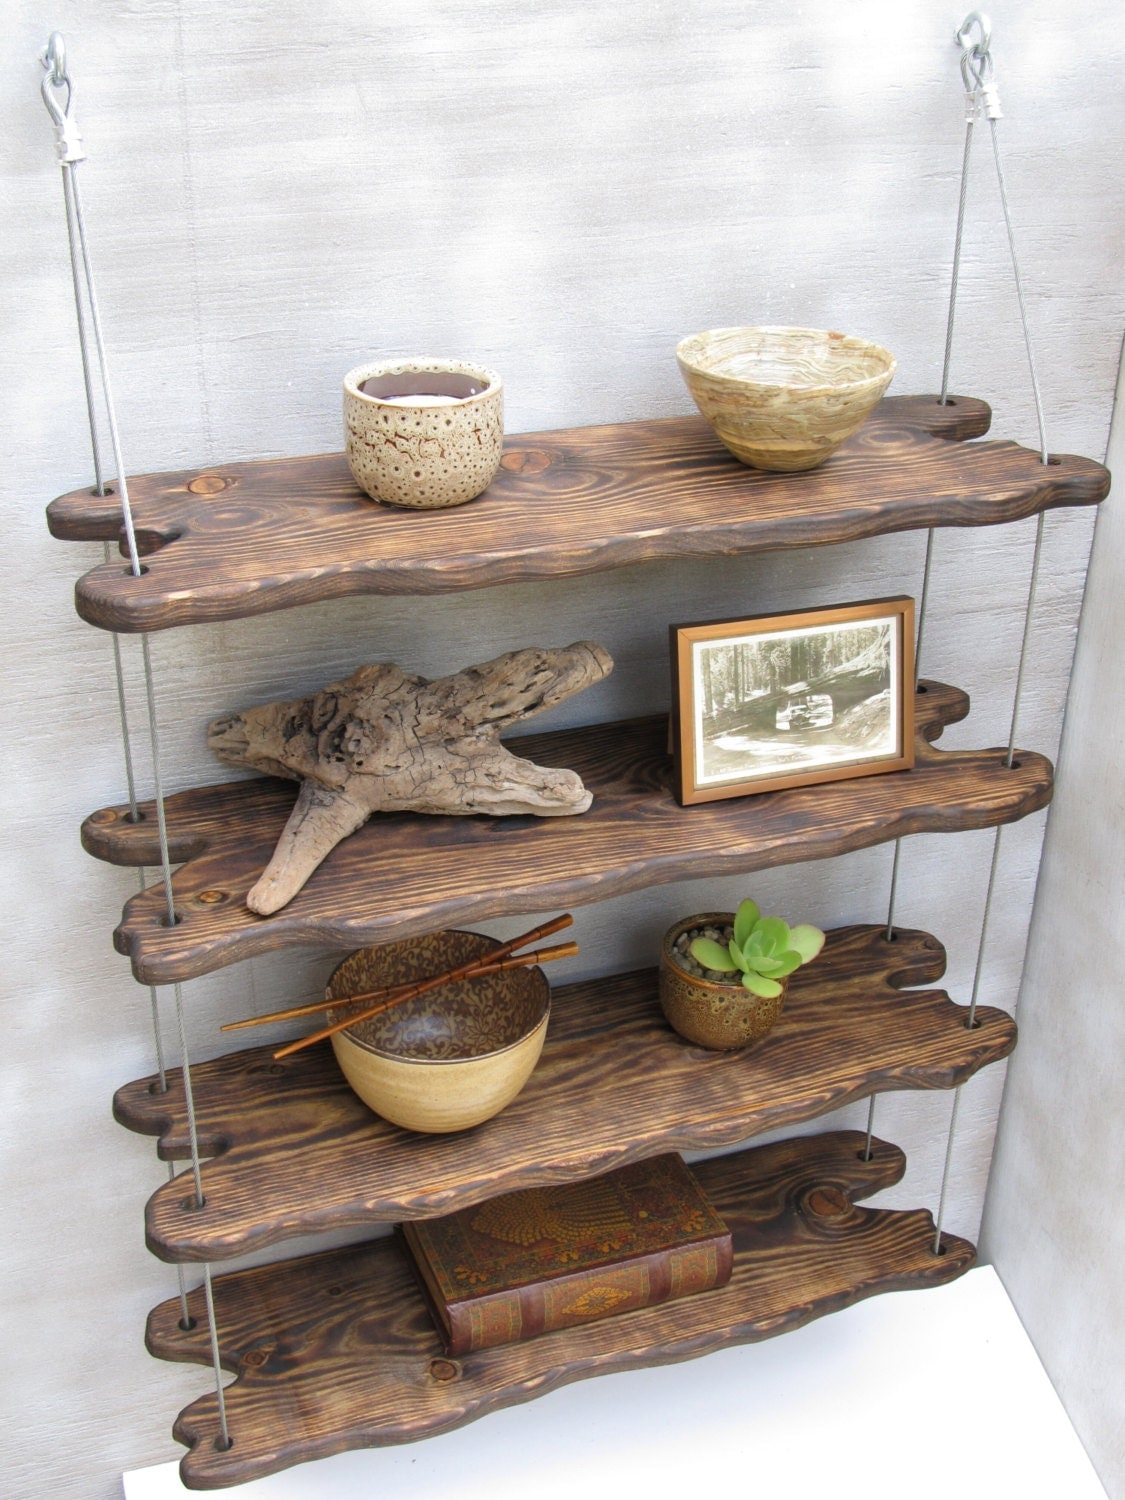 Driftwood shelves display shelving shelving system shelves for How to make display shelves